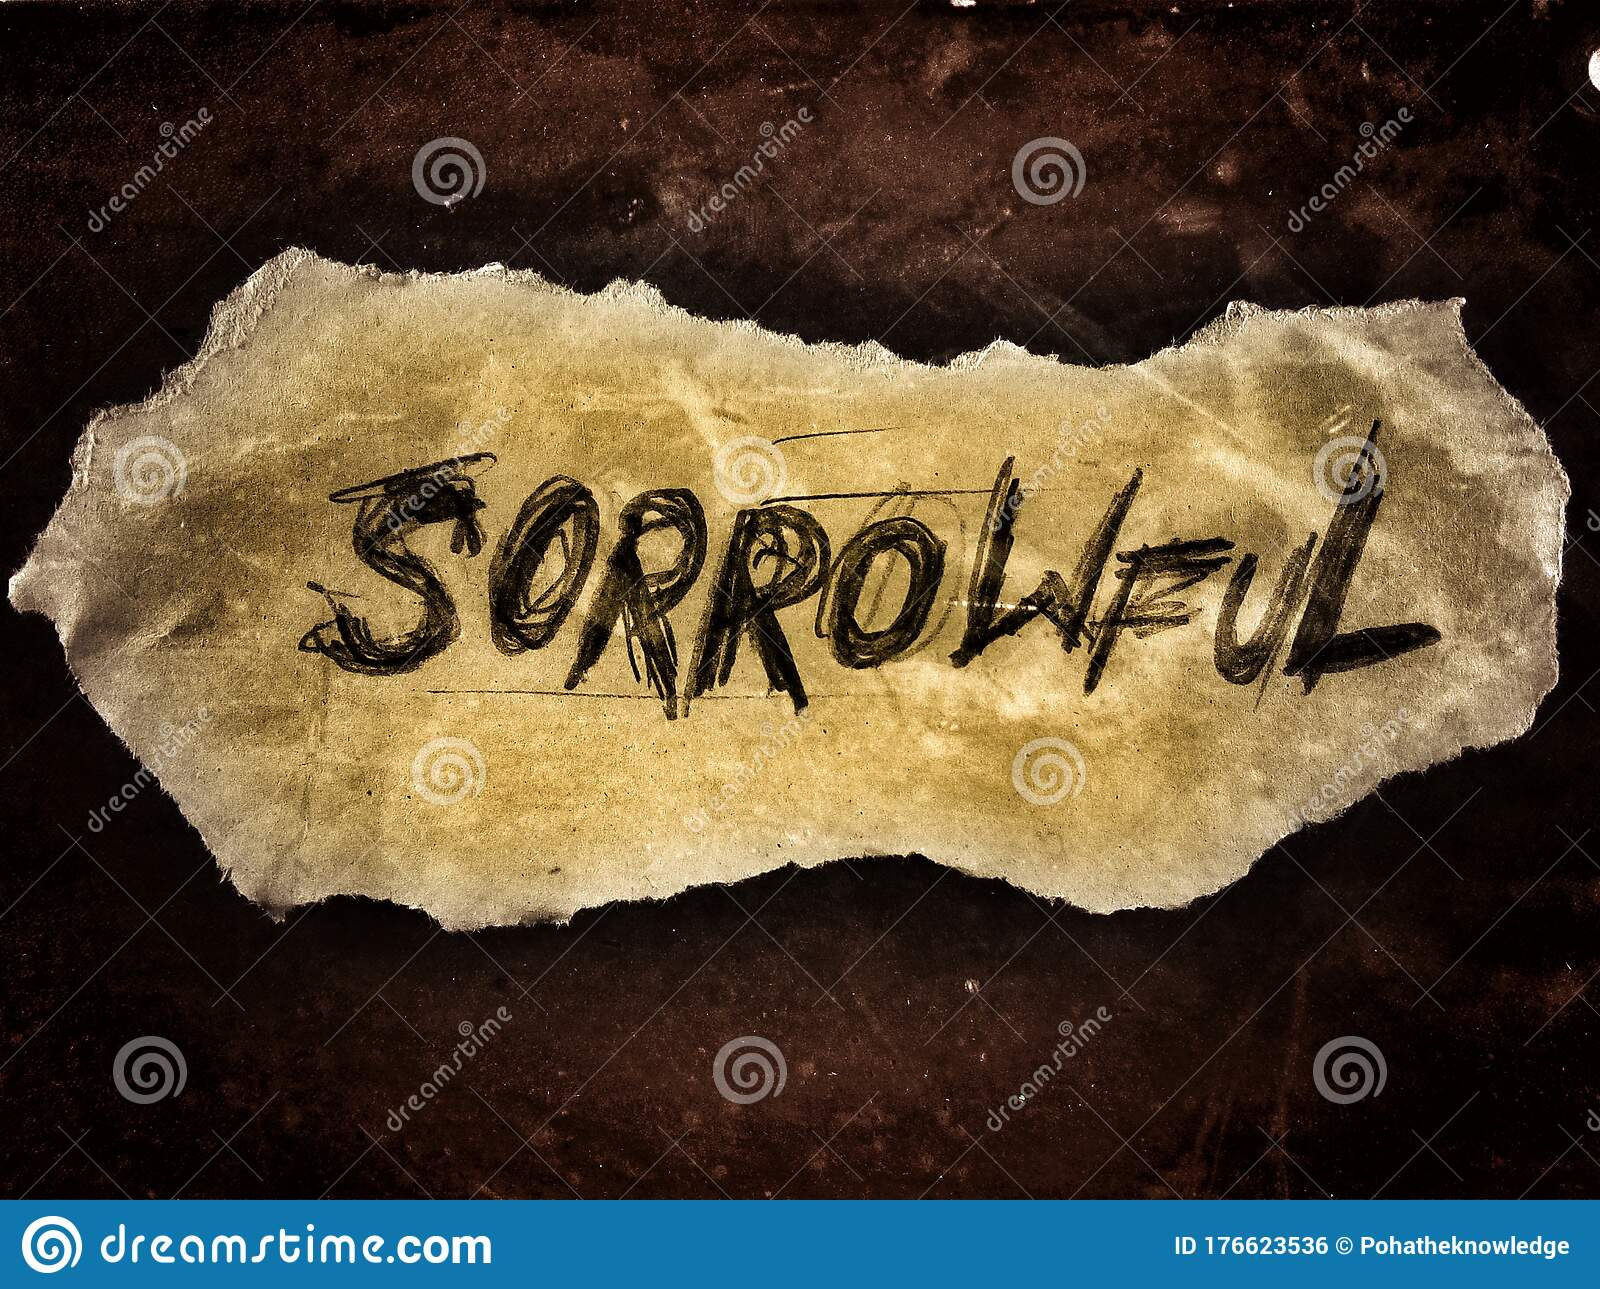 Sorrowful Word Written In Rough Written Style On The Small Piece Of Paper  Stock Photo - Image of paper, word: 176623536